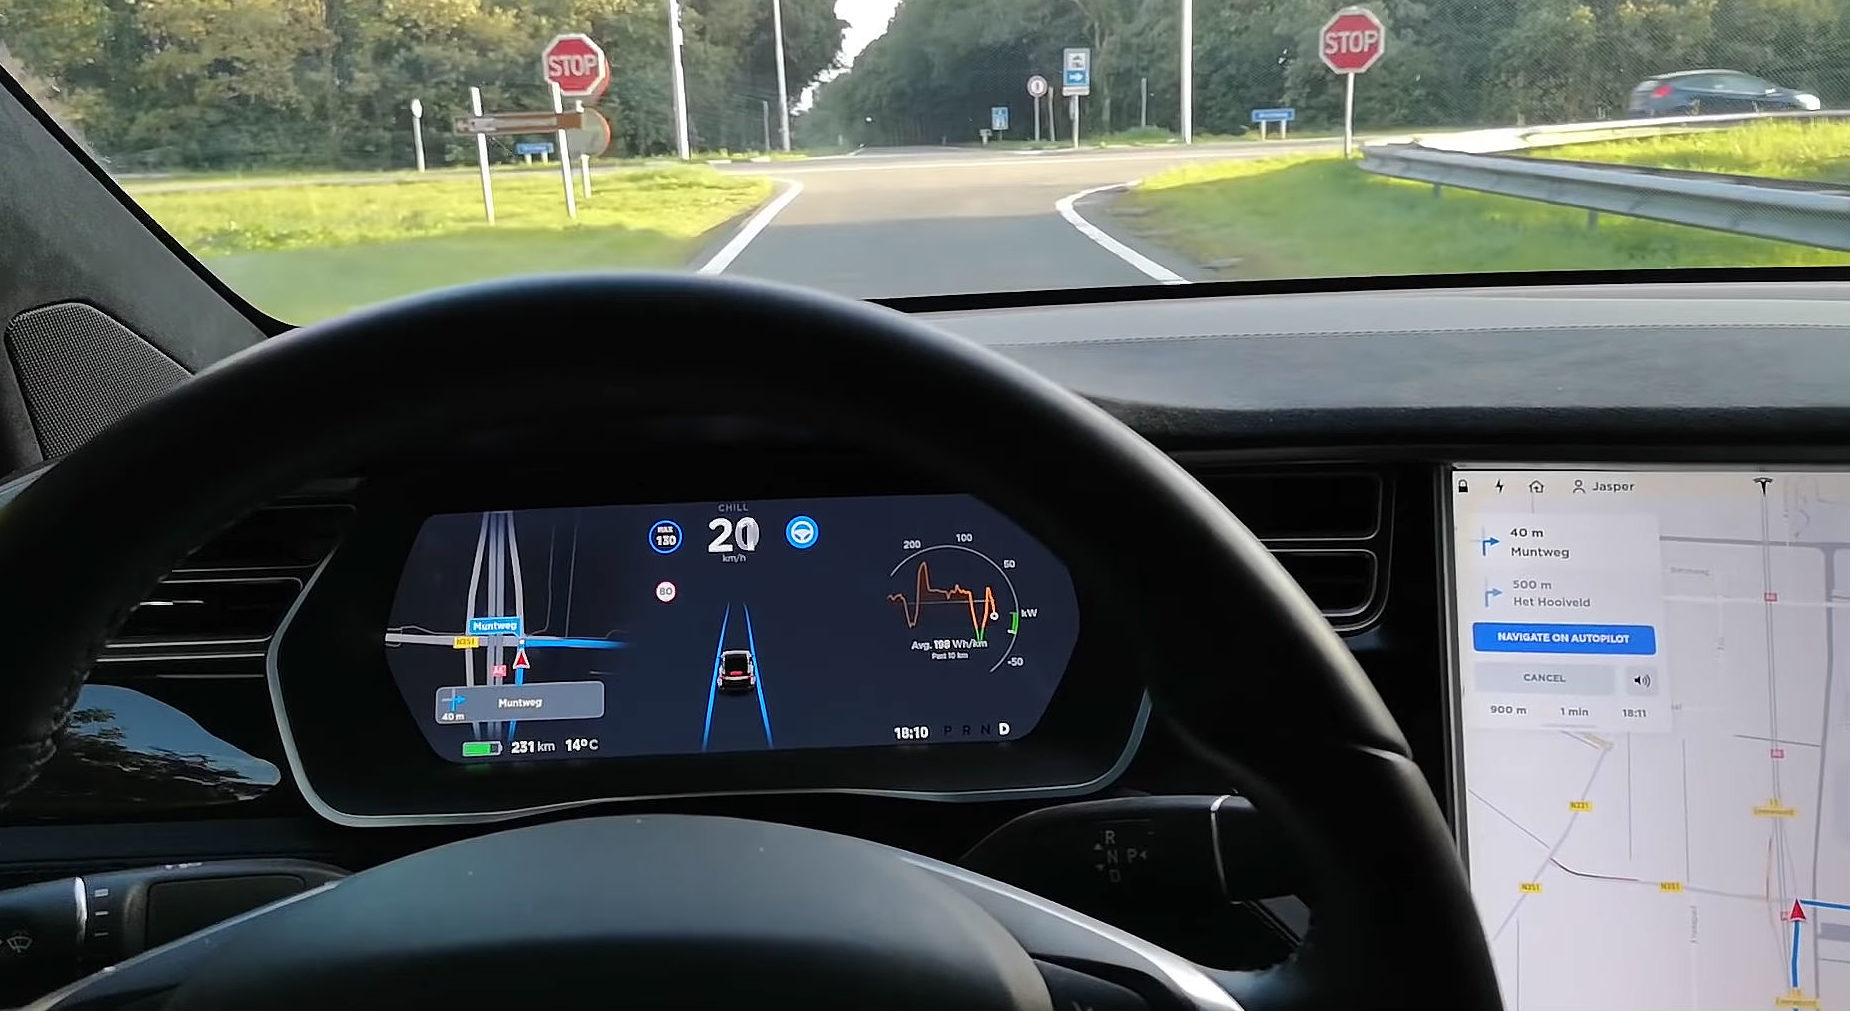 Tesla ranked 2nd to last in self-driving race by Navigant